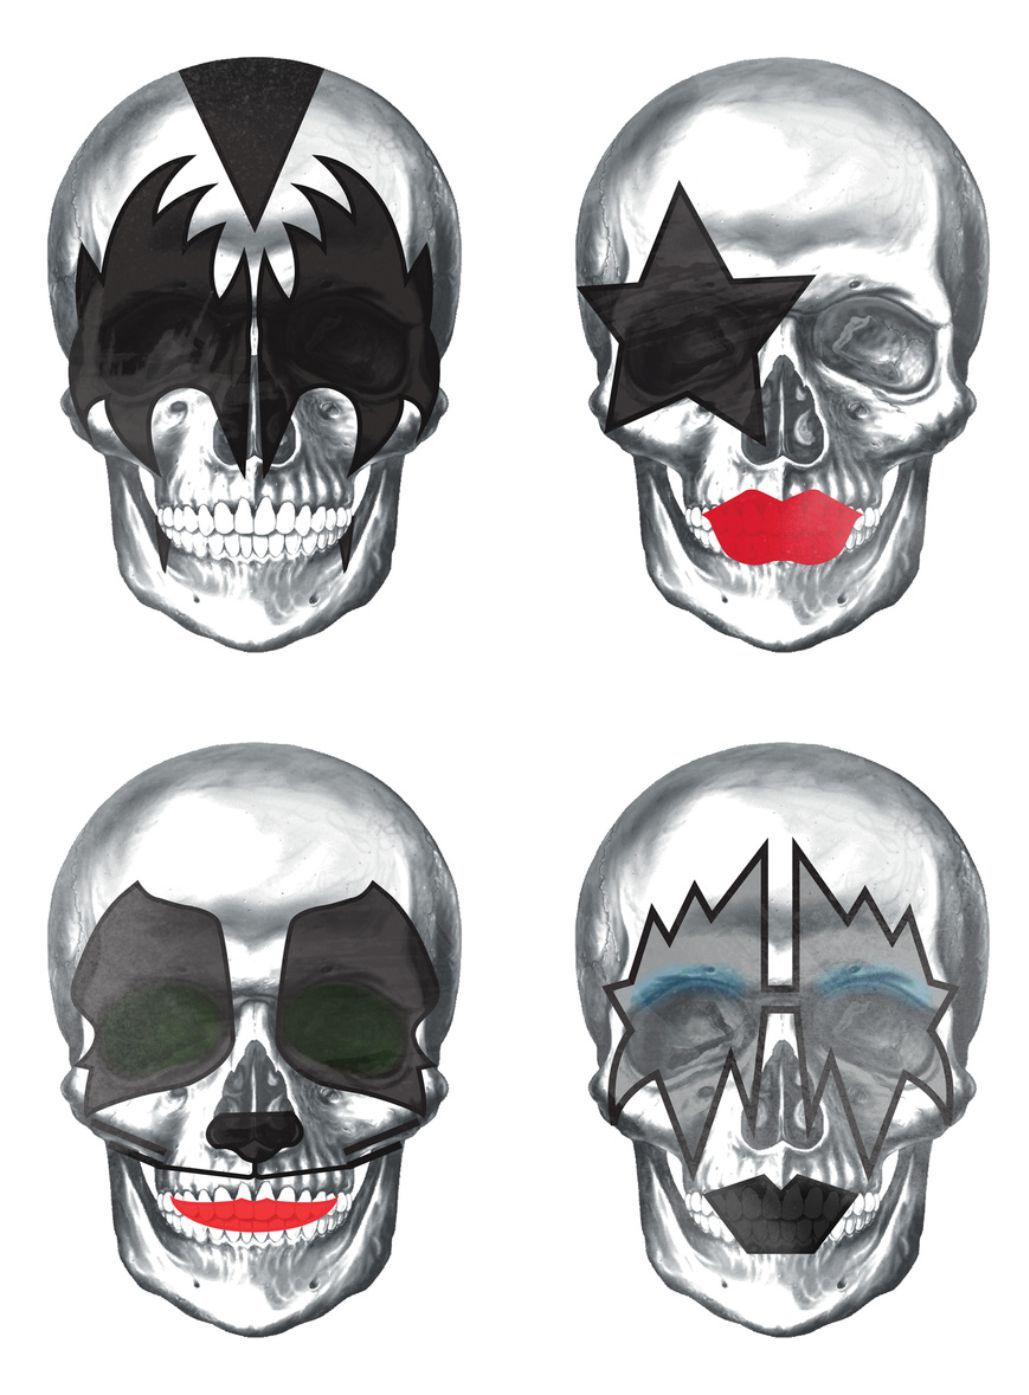 Adult Top Kiss Band Coloring Pages Gallery Images cute 1000 images about kiss on pinterest gene simmons band and paul stanley images